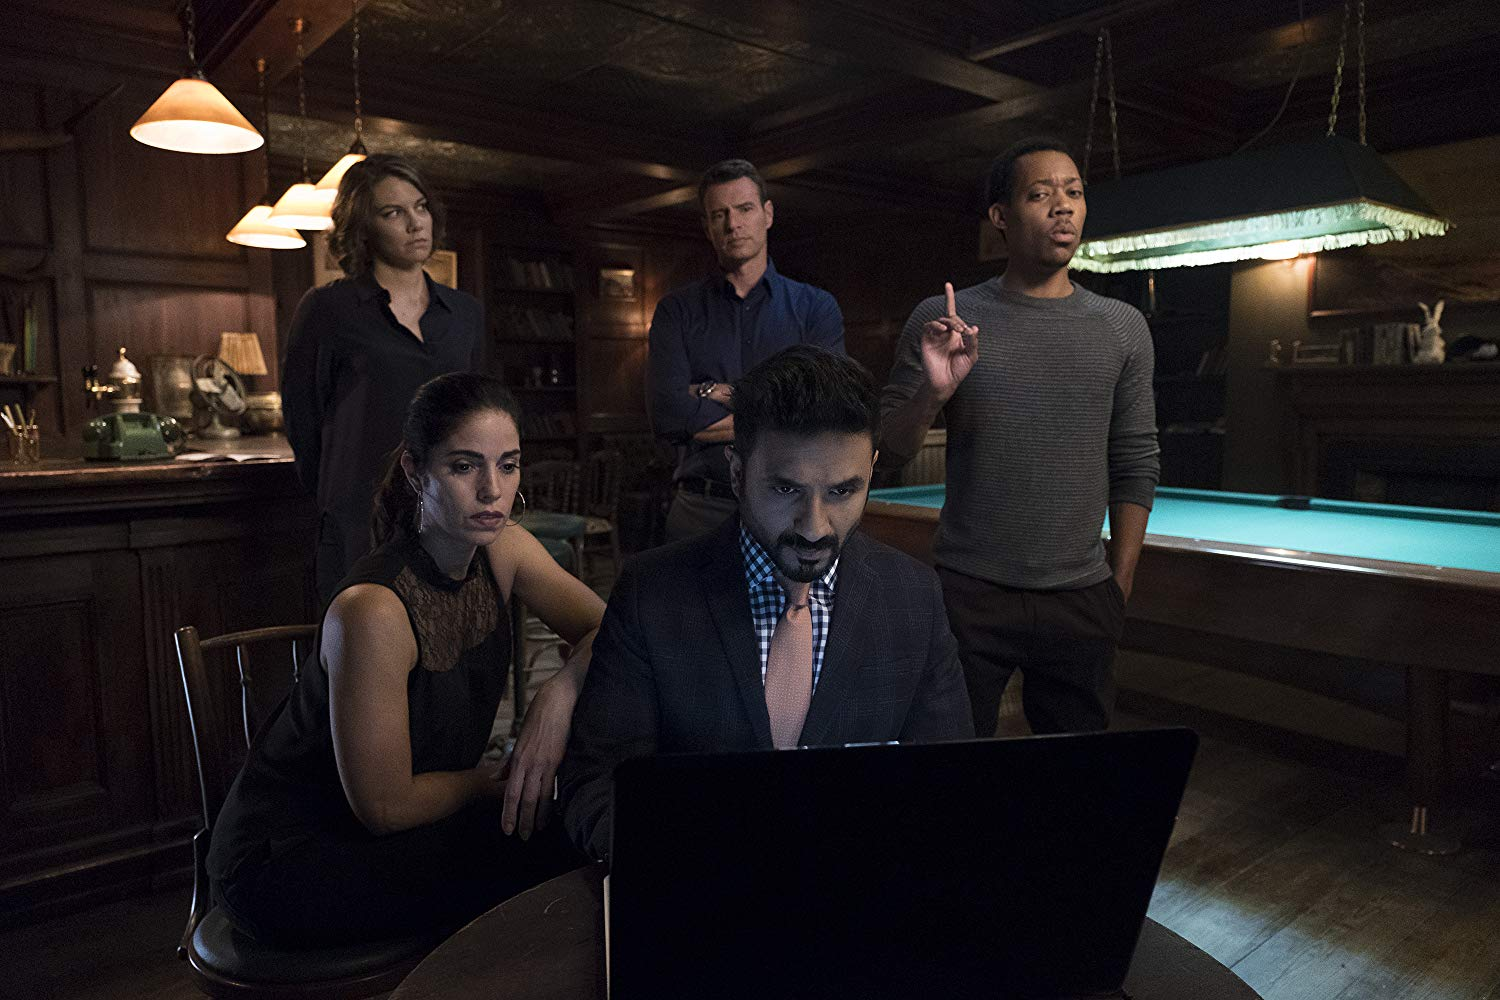 Scott Foley, Ana Ortiz, Lauren Cohan, Tyler James Williams, and Vir Das in 'Whiskey Cavalier'. (Source: IMDB)